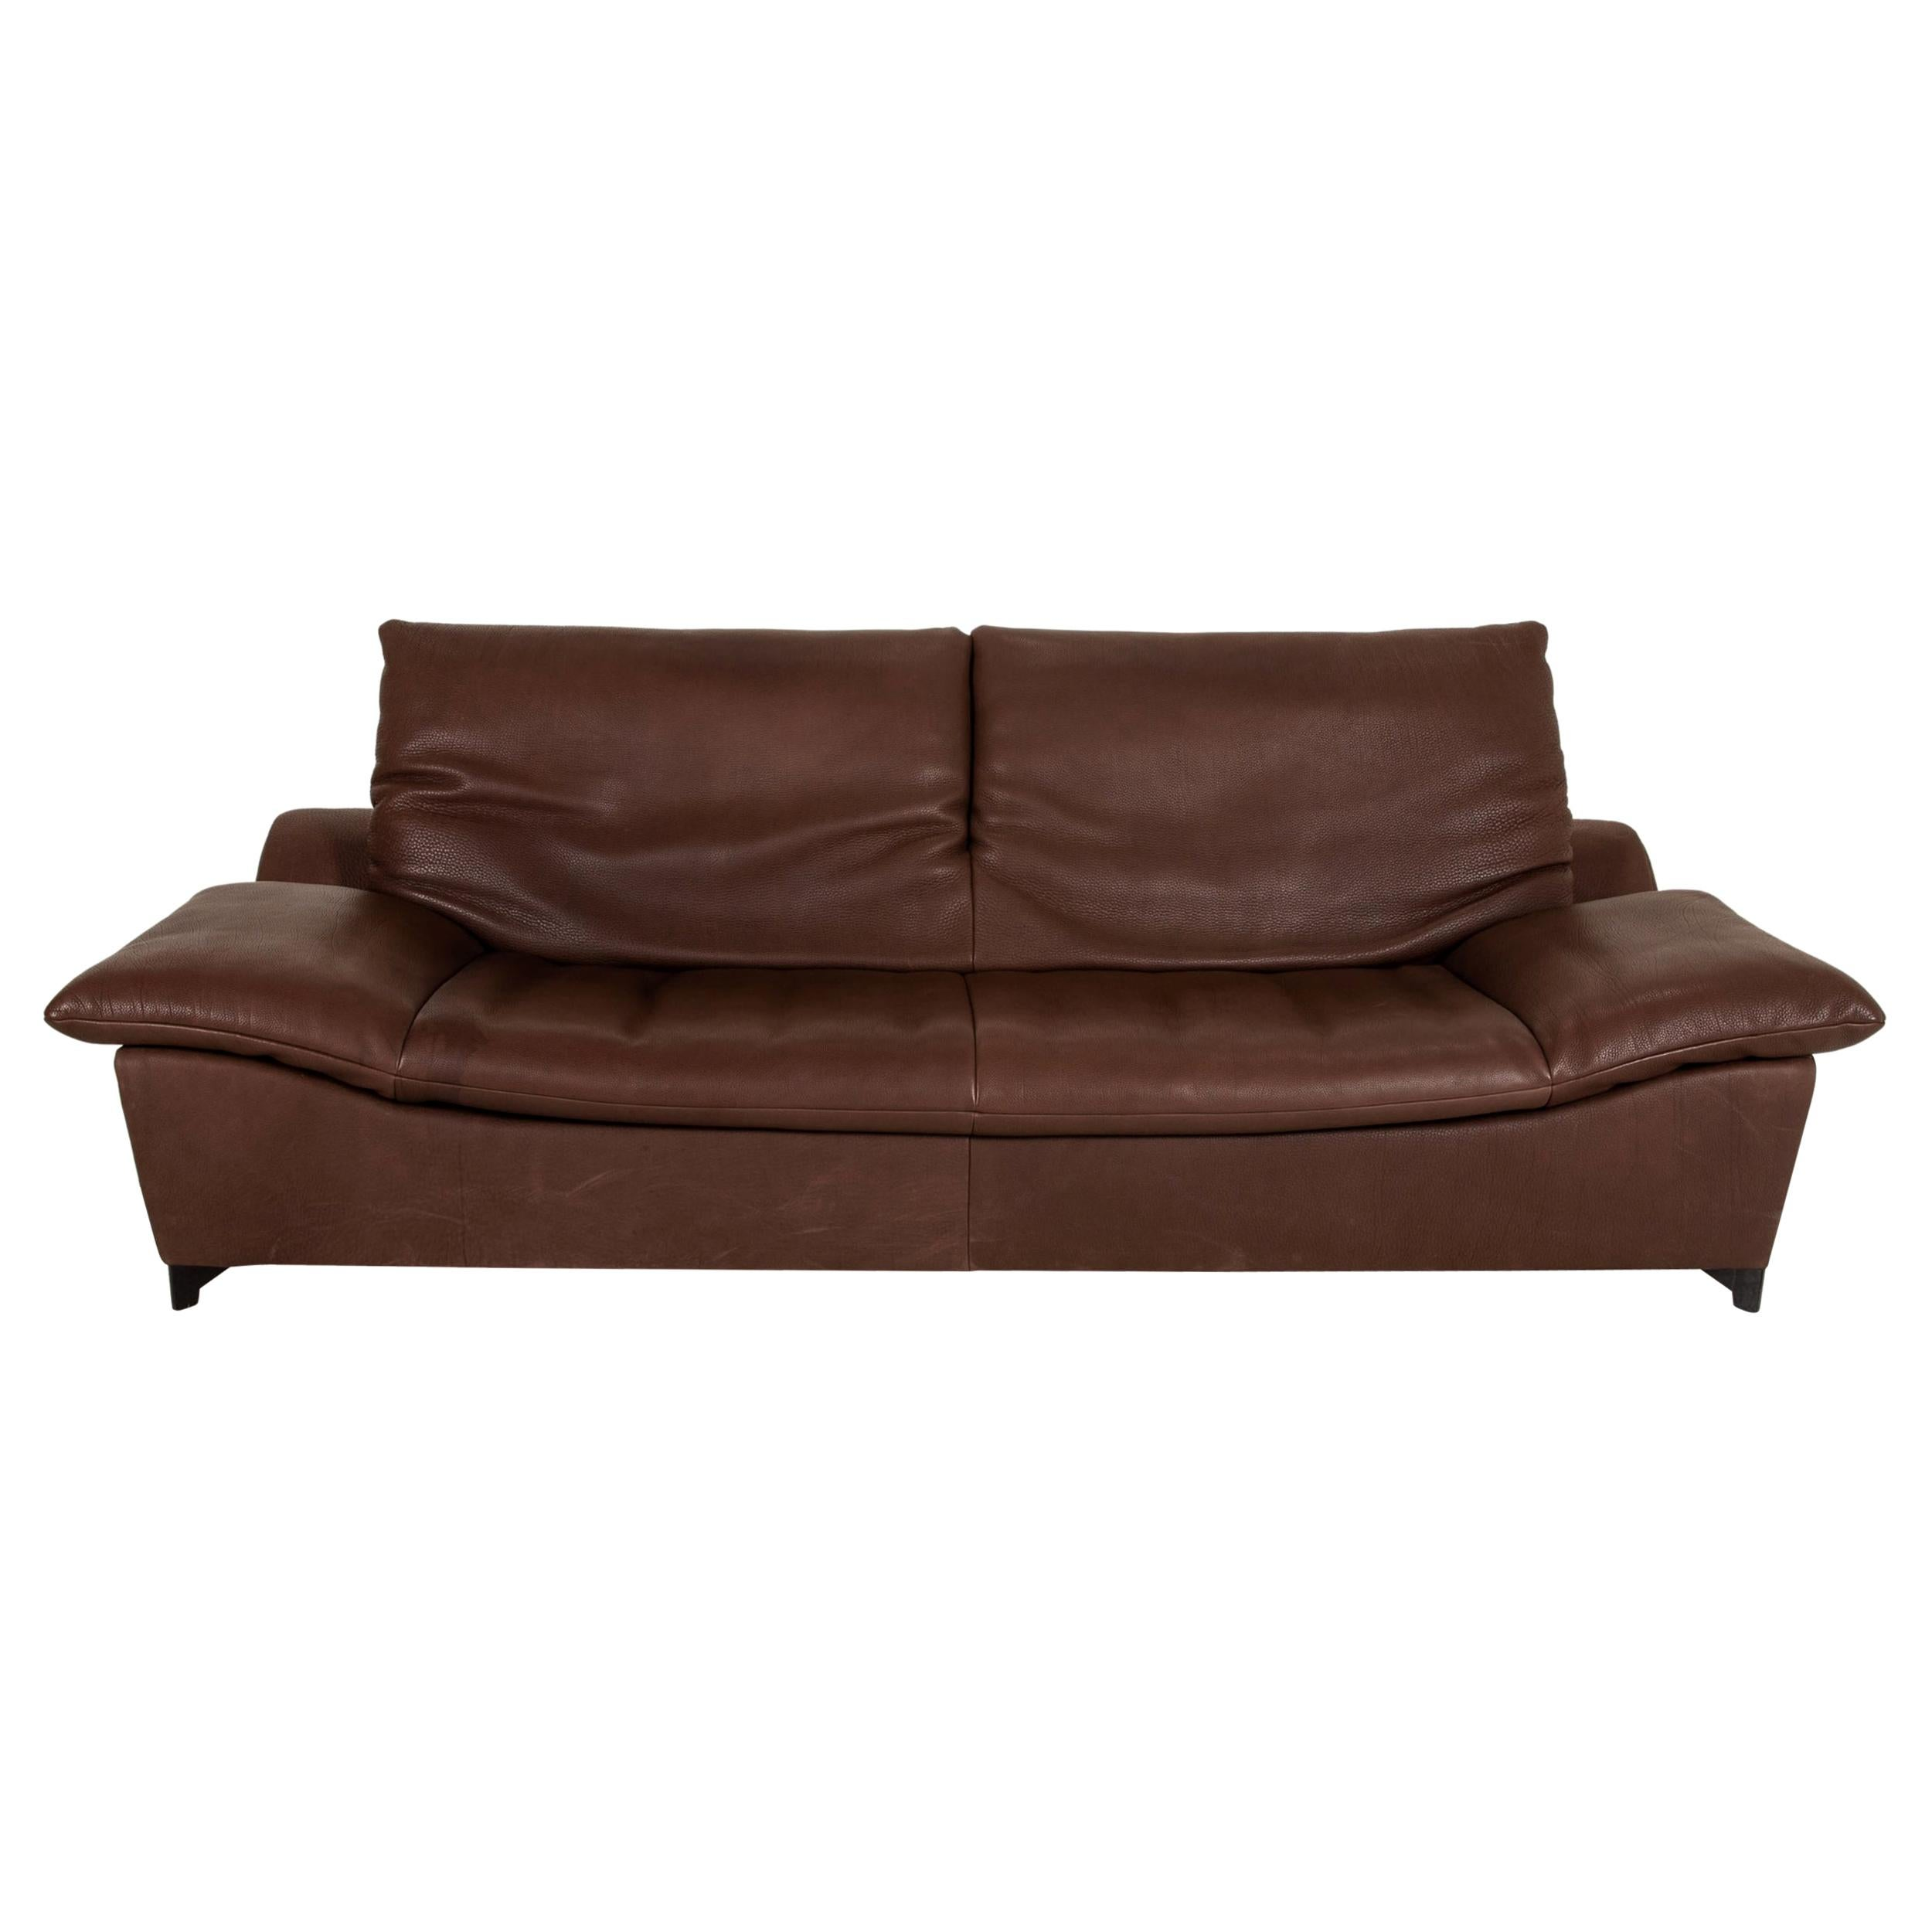 Who's Perfect Minnesota Leather Sofa Brown Three Seater Function